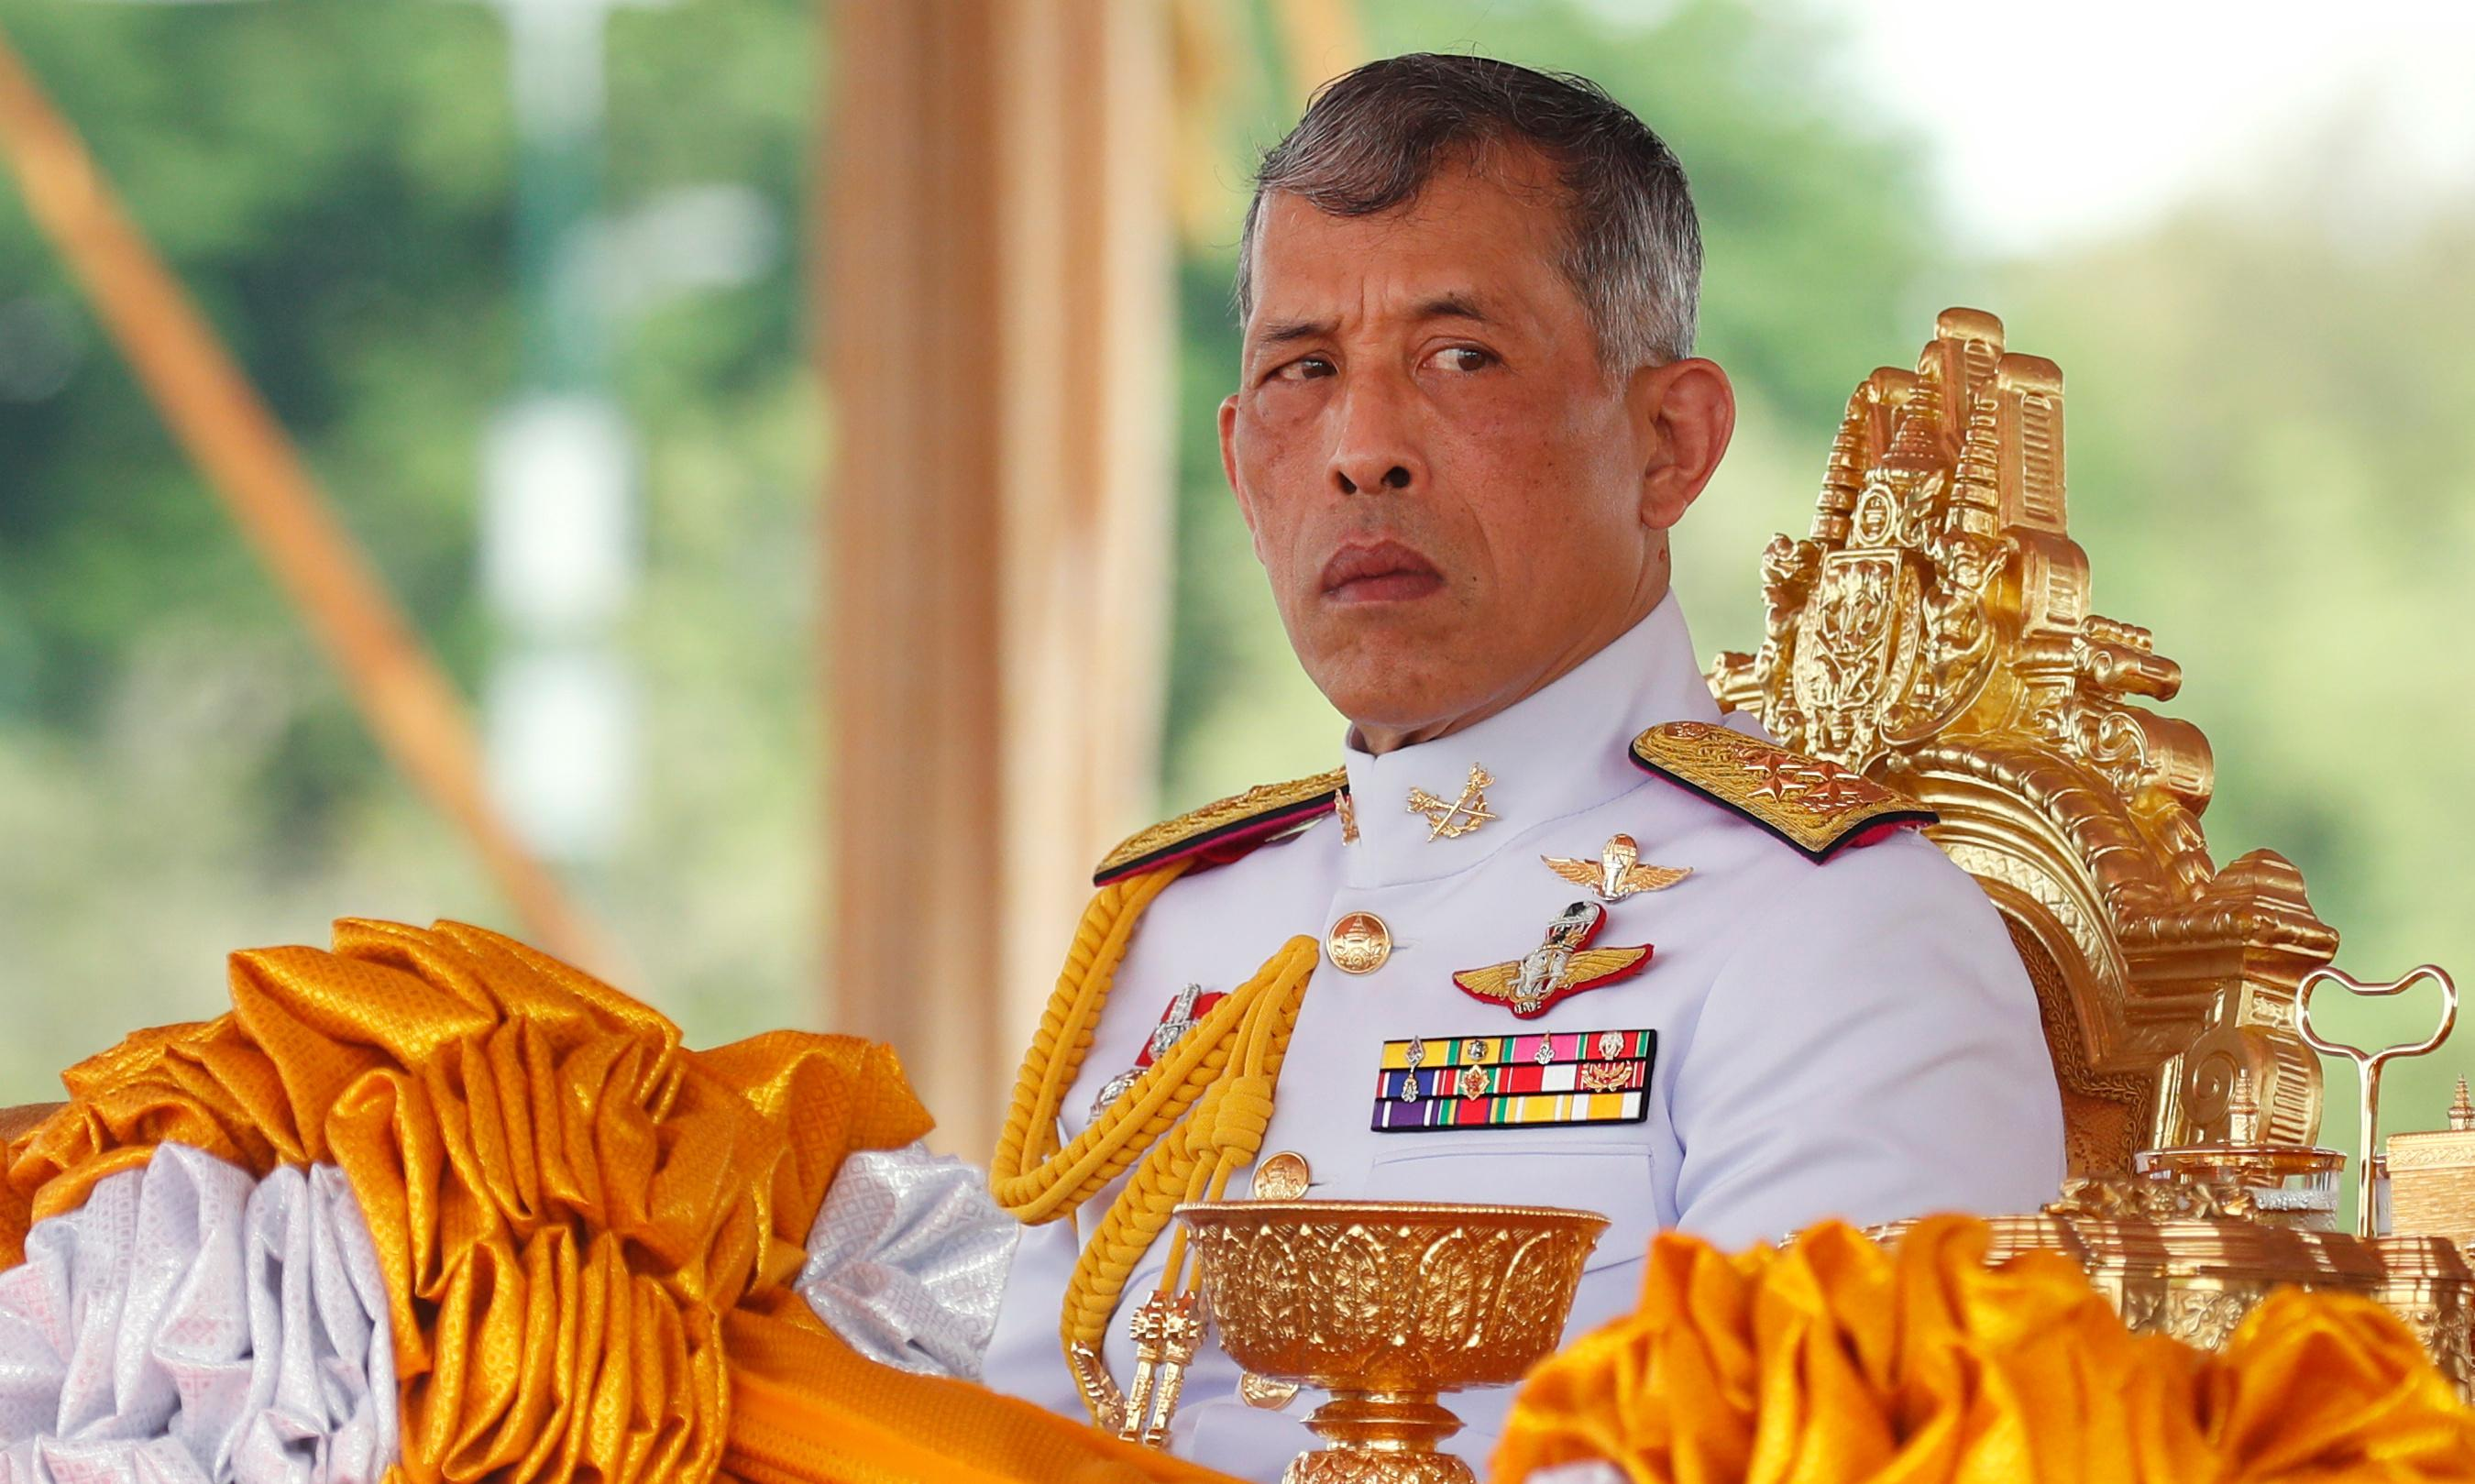 Thai king fires royal guards for 'adultery' as purges continue